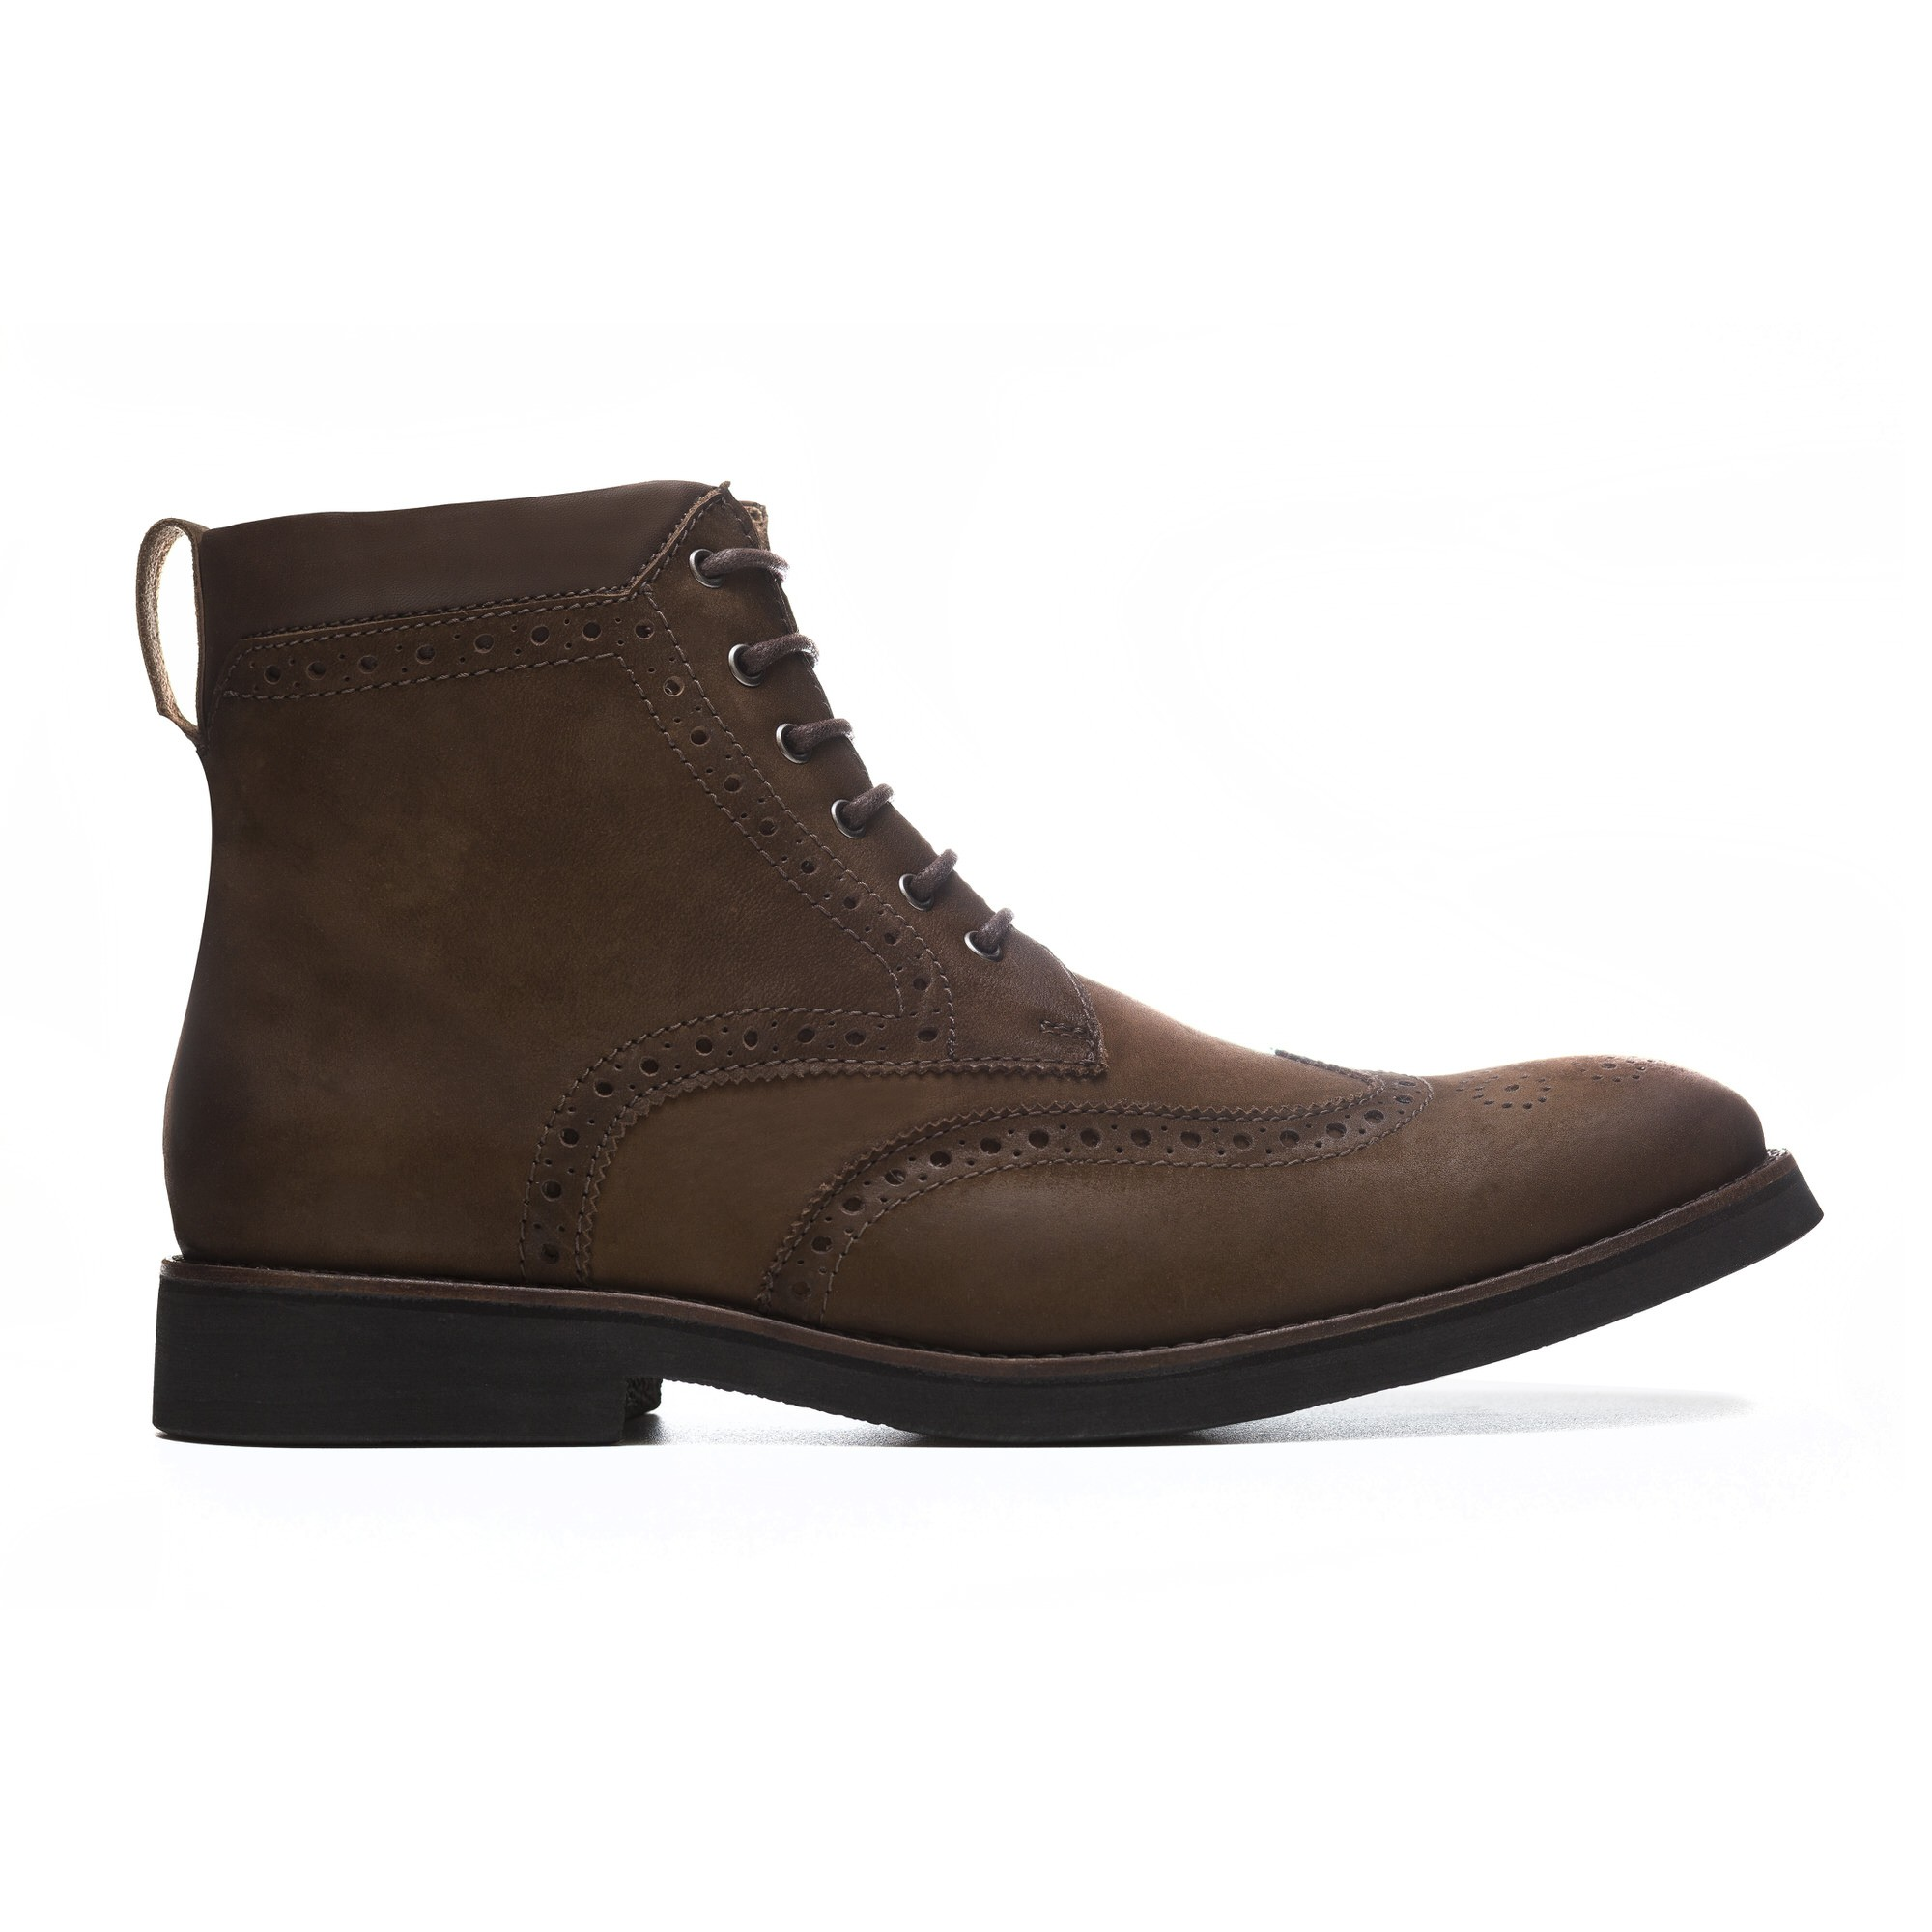 Bota Masculina Smith Rato